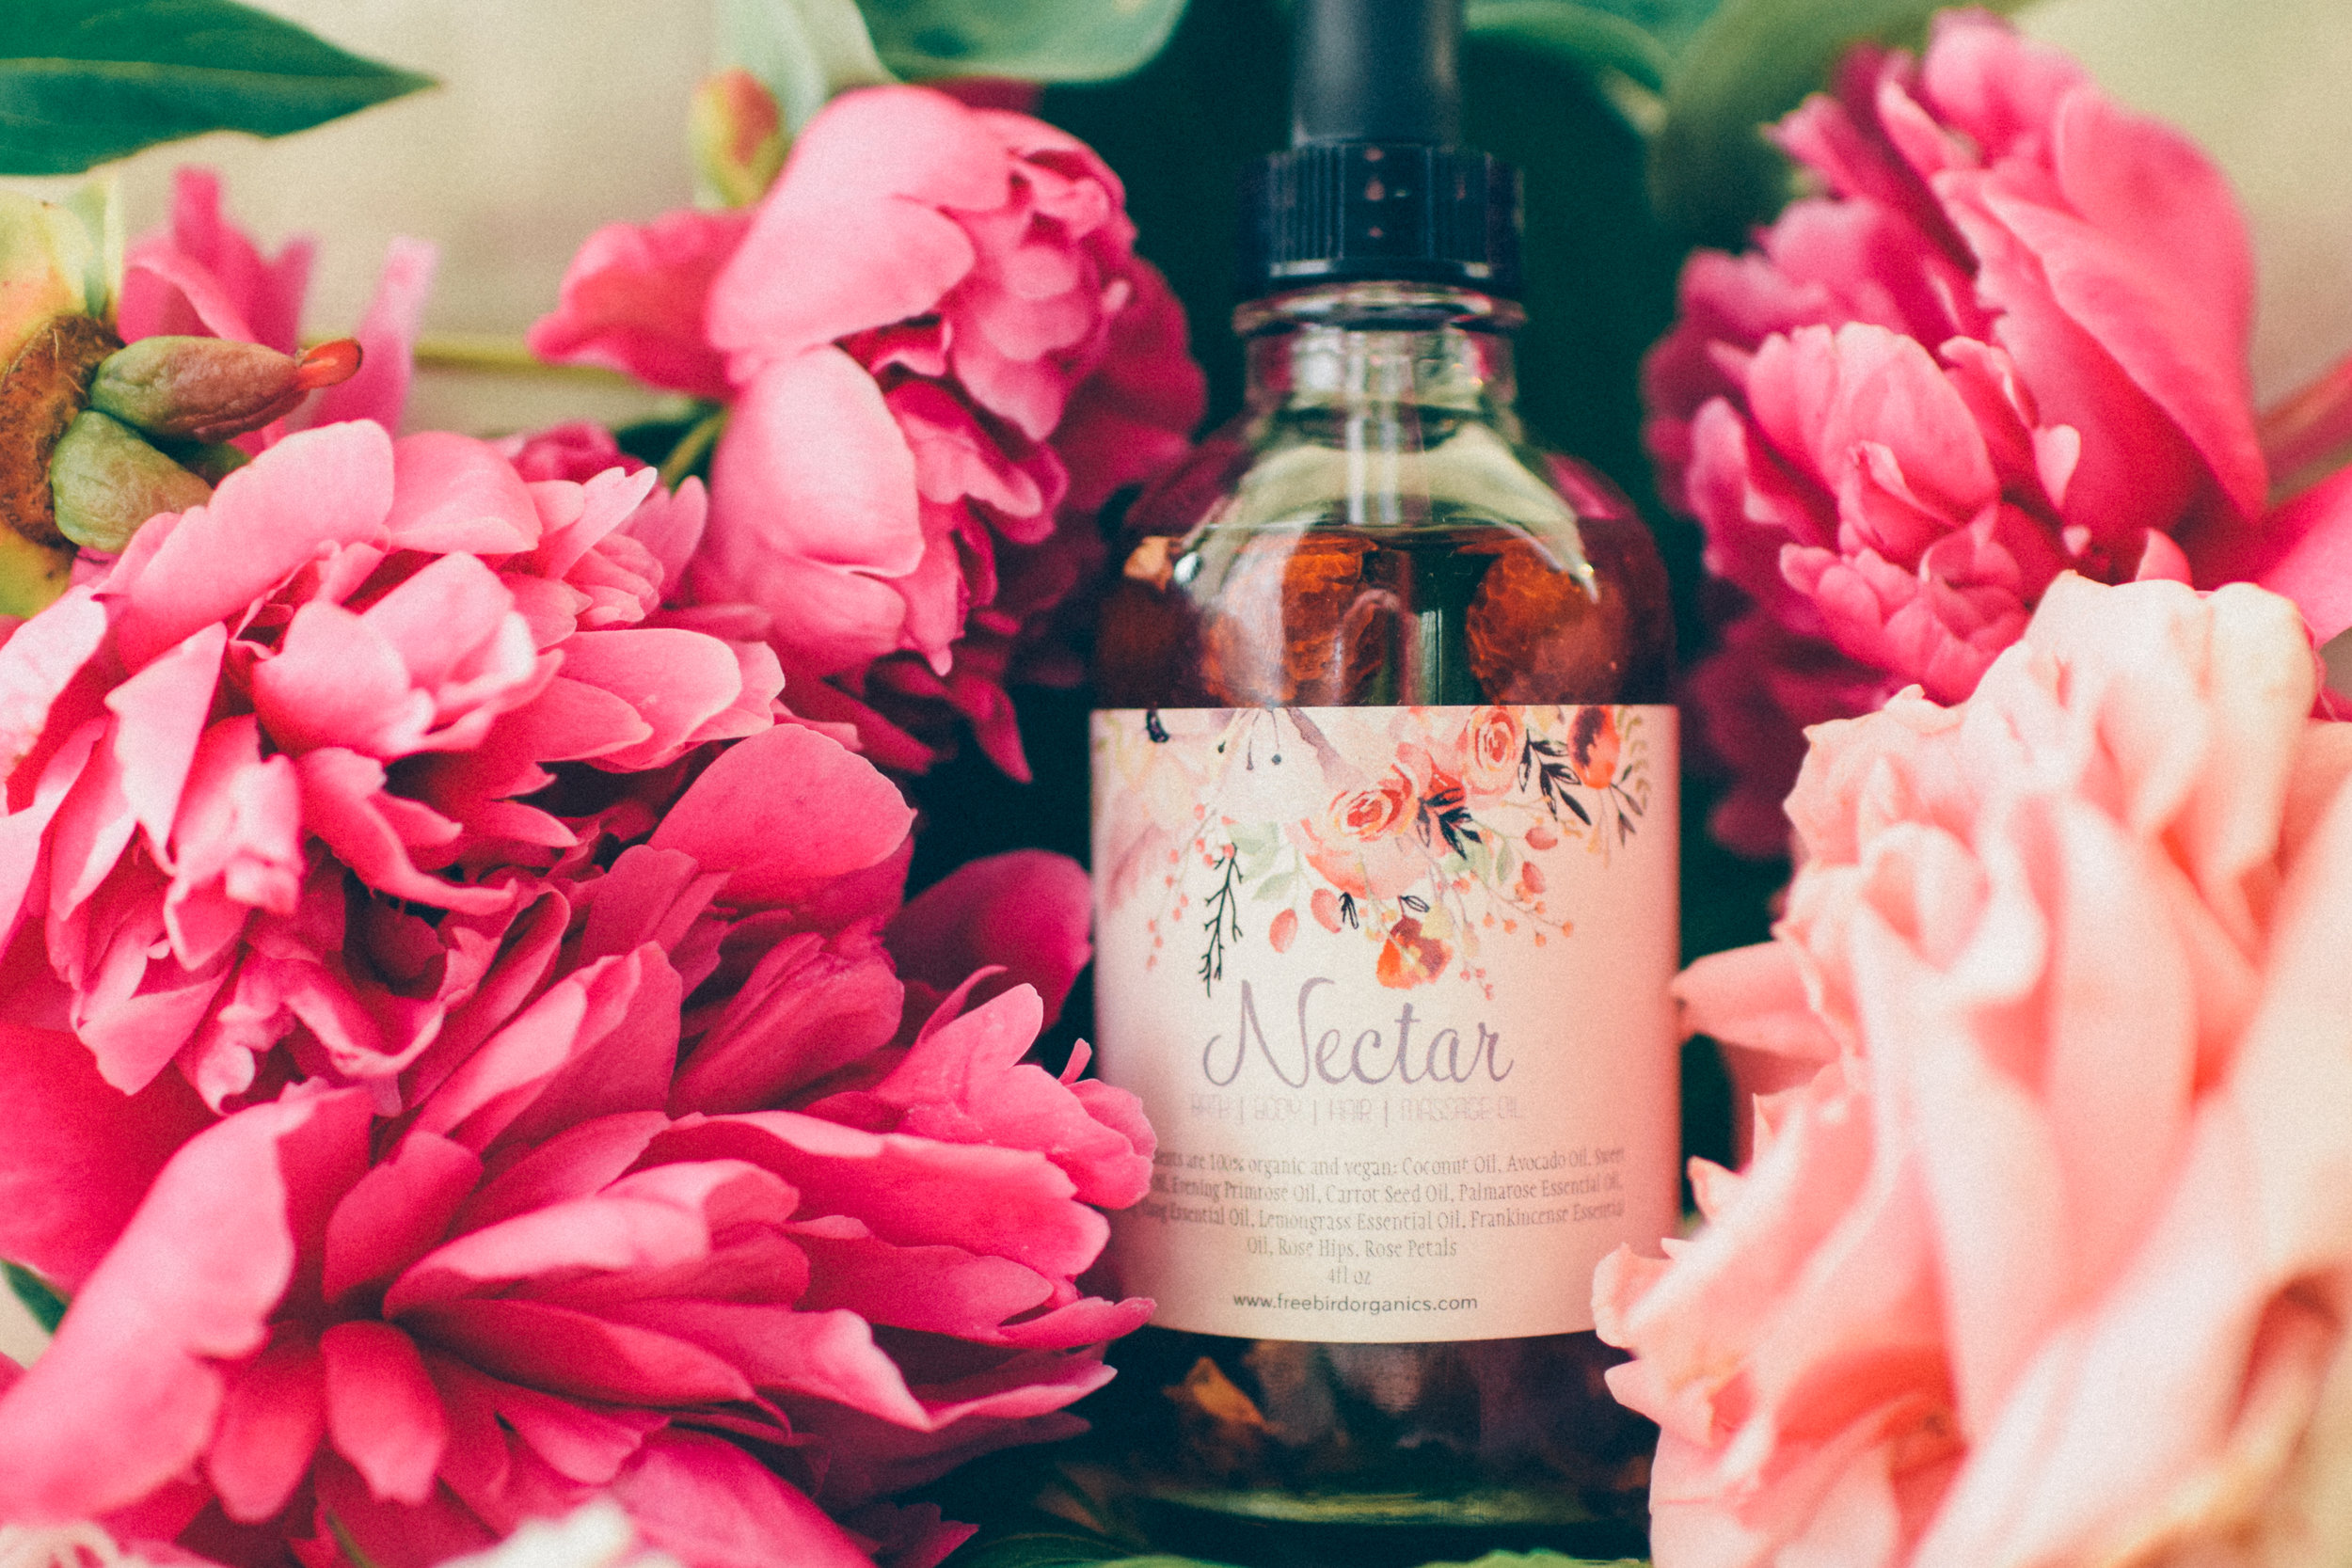 8.  Fragrance  - There are so many wonderful smelling essential oils and oil blends out there.  If you are already using theses in other areas of your self care then don't be afraid to dab a couple drops on your pulse points as a fragrance!